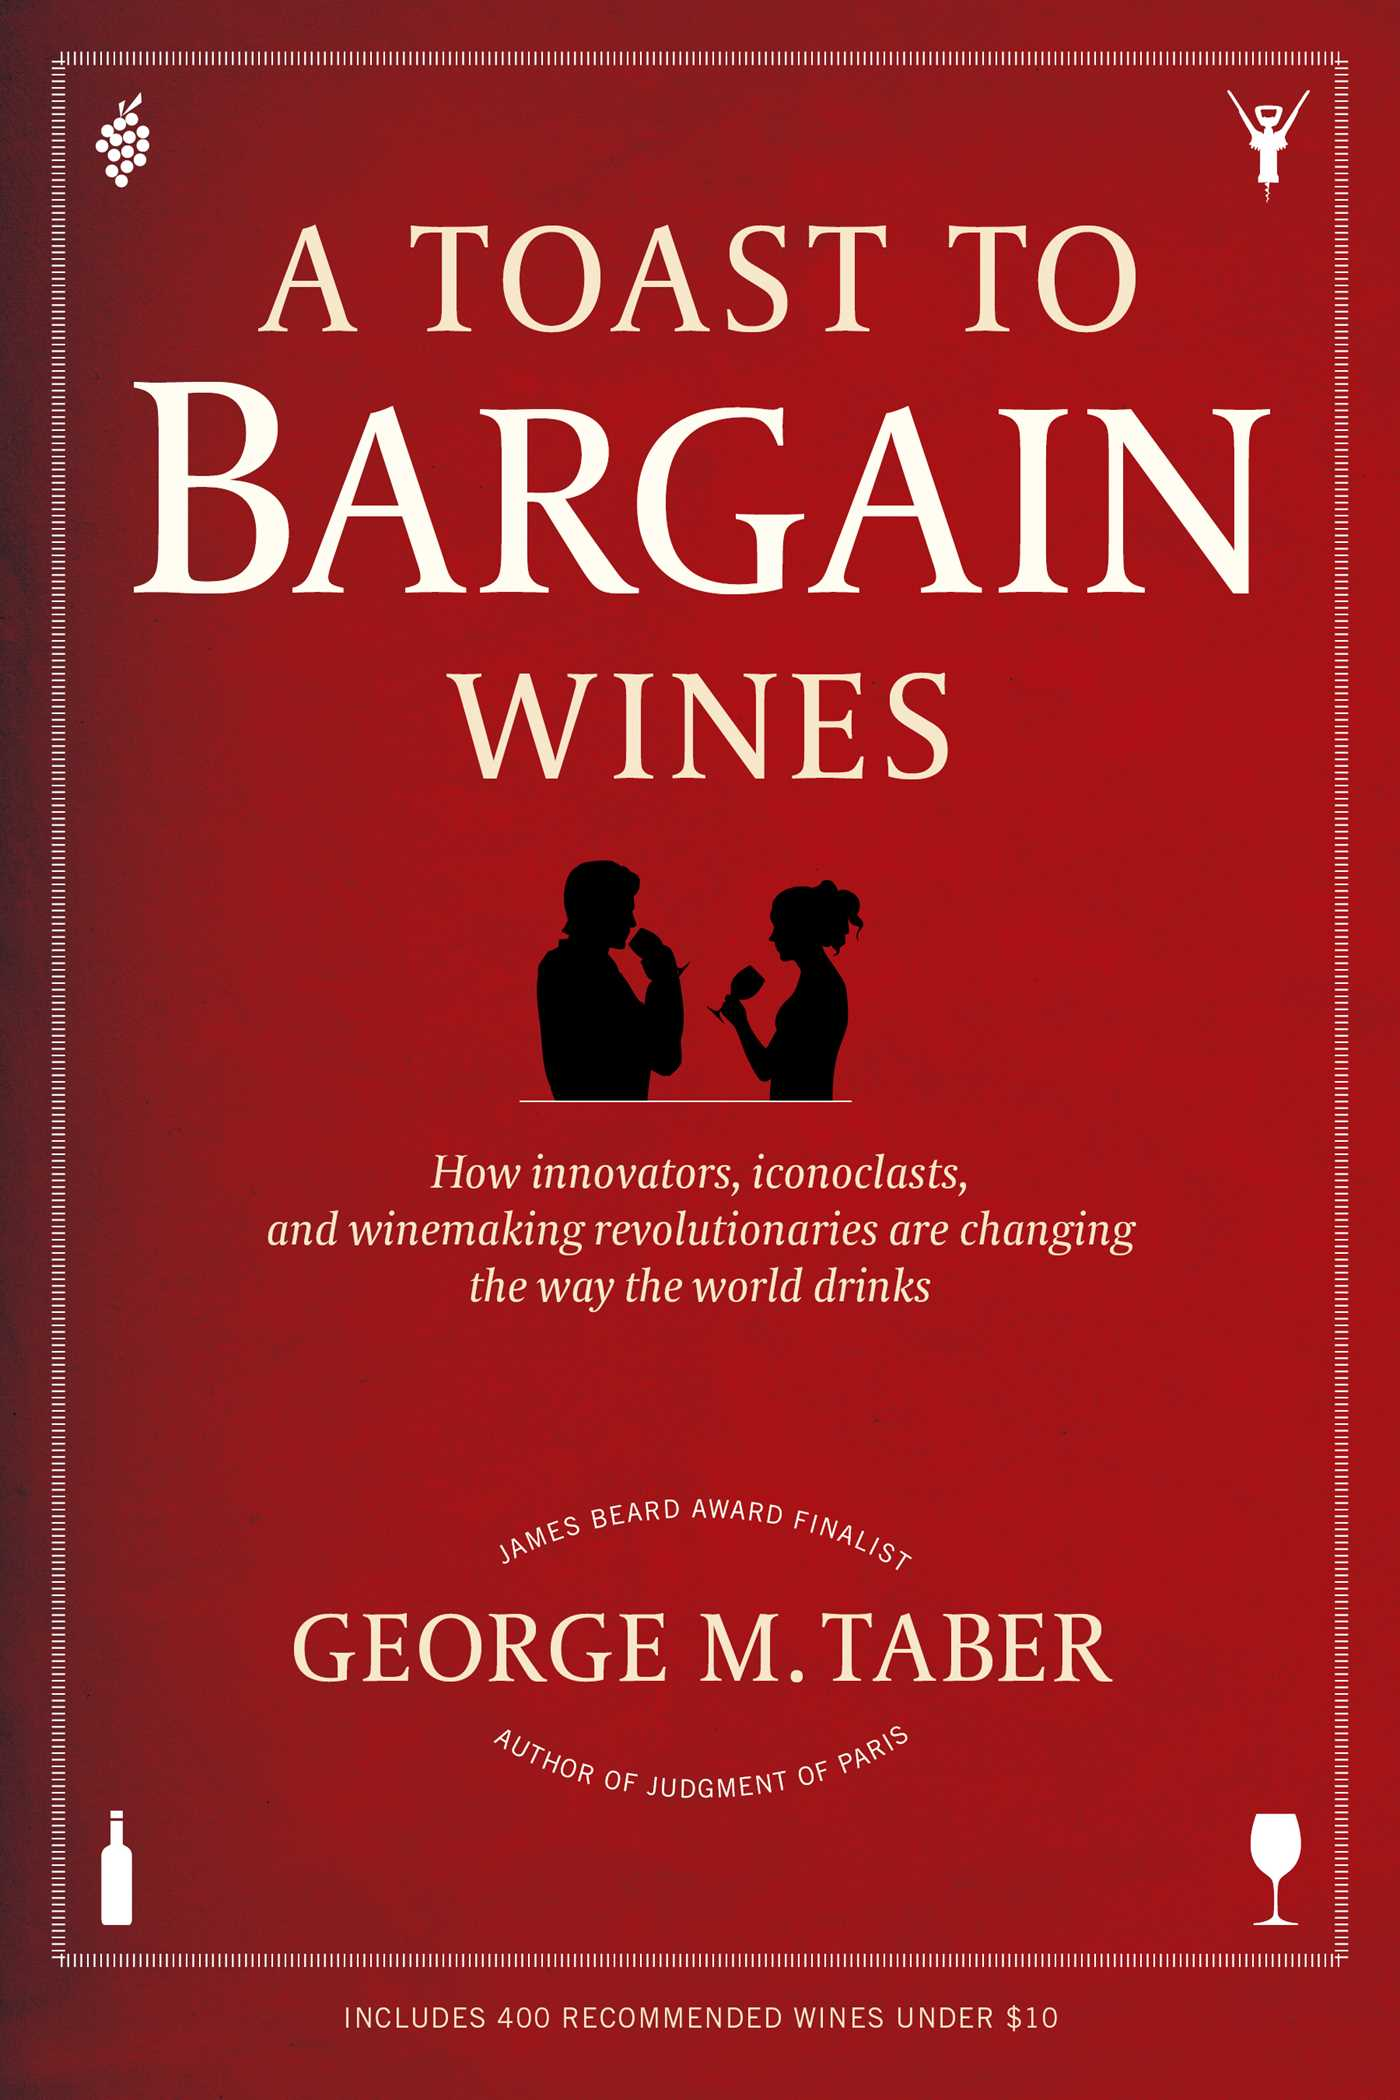 A-toast-to-bargain-wines-9781439195208_hr